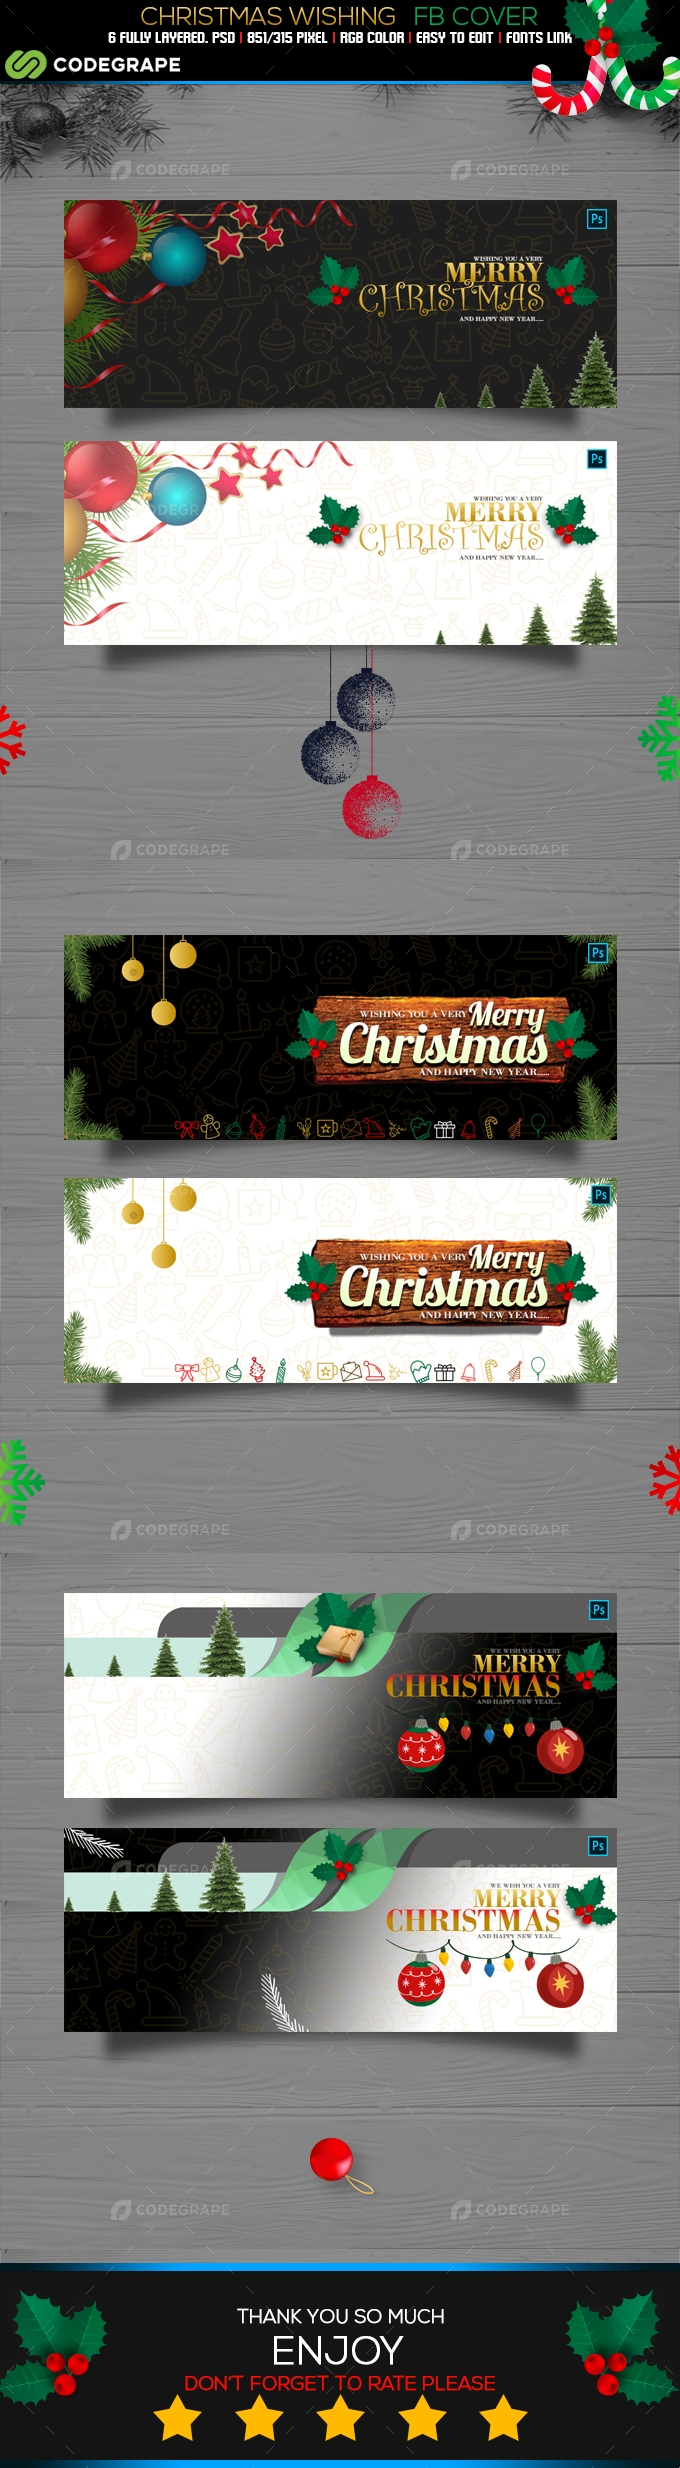 Christmas Wishing Facebook Cover